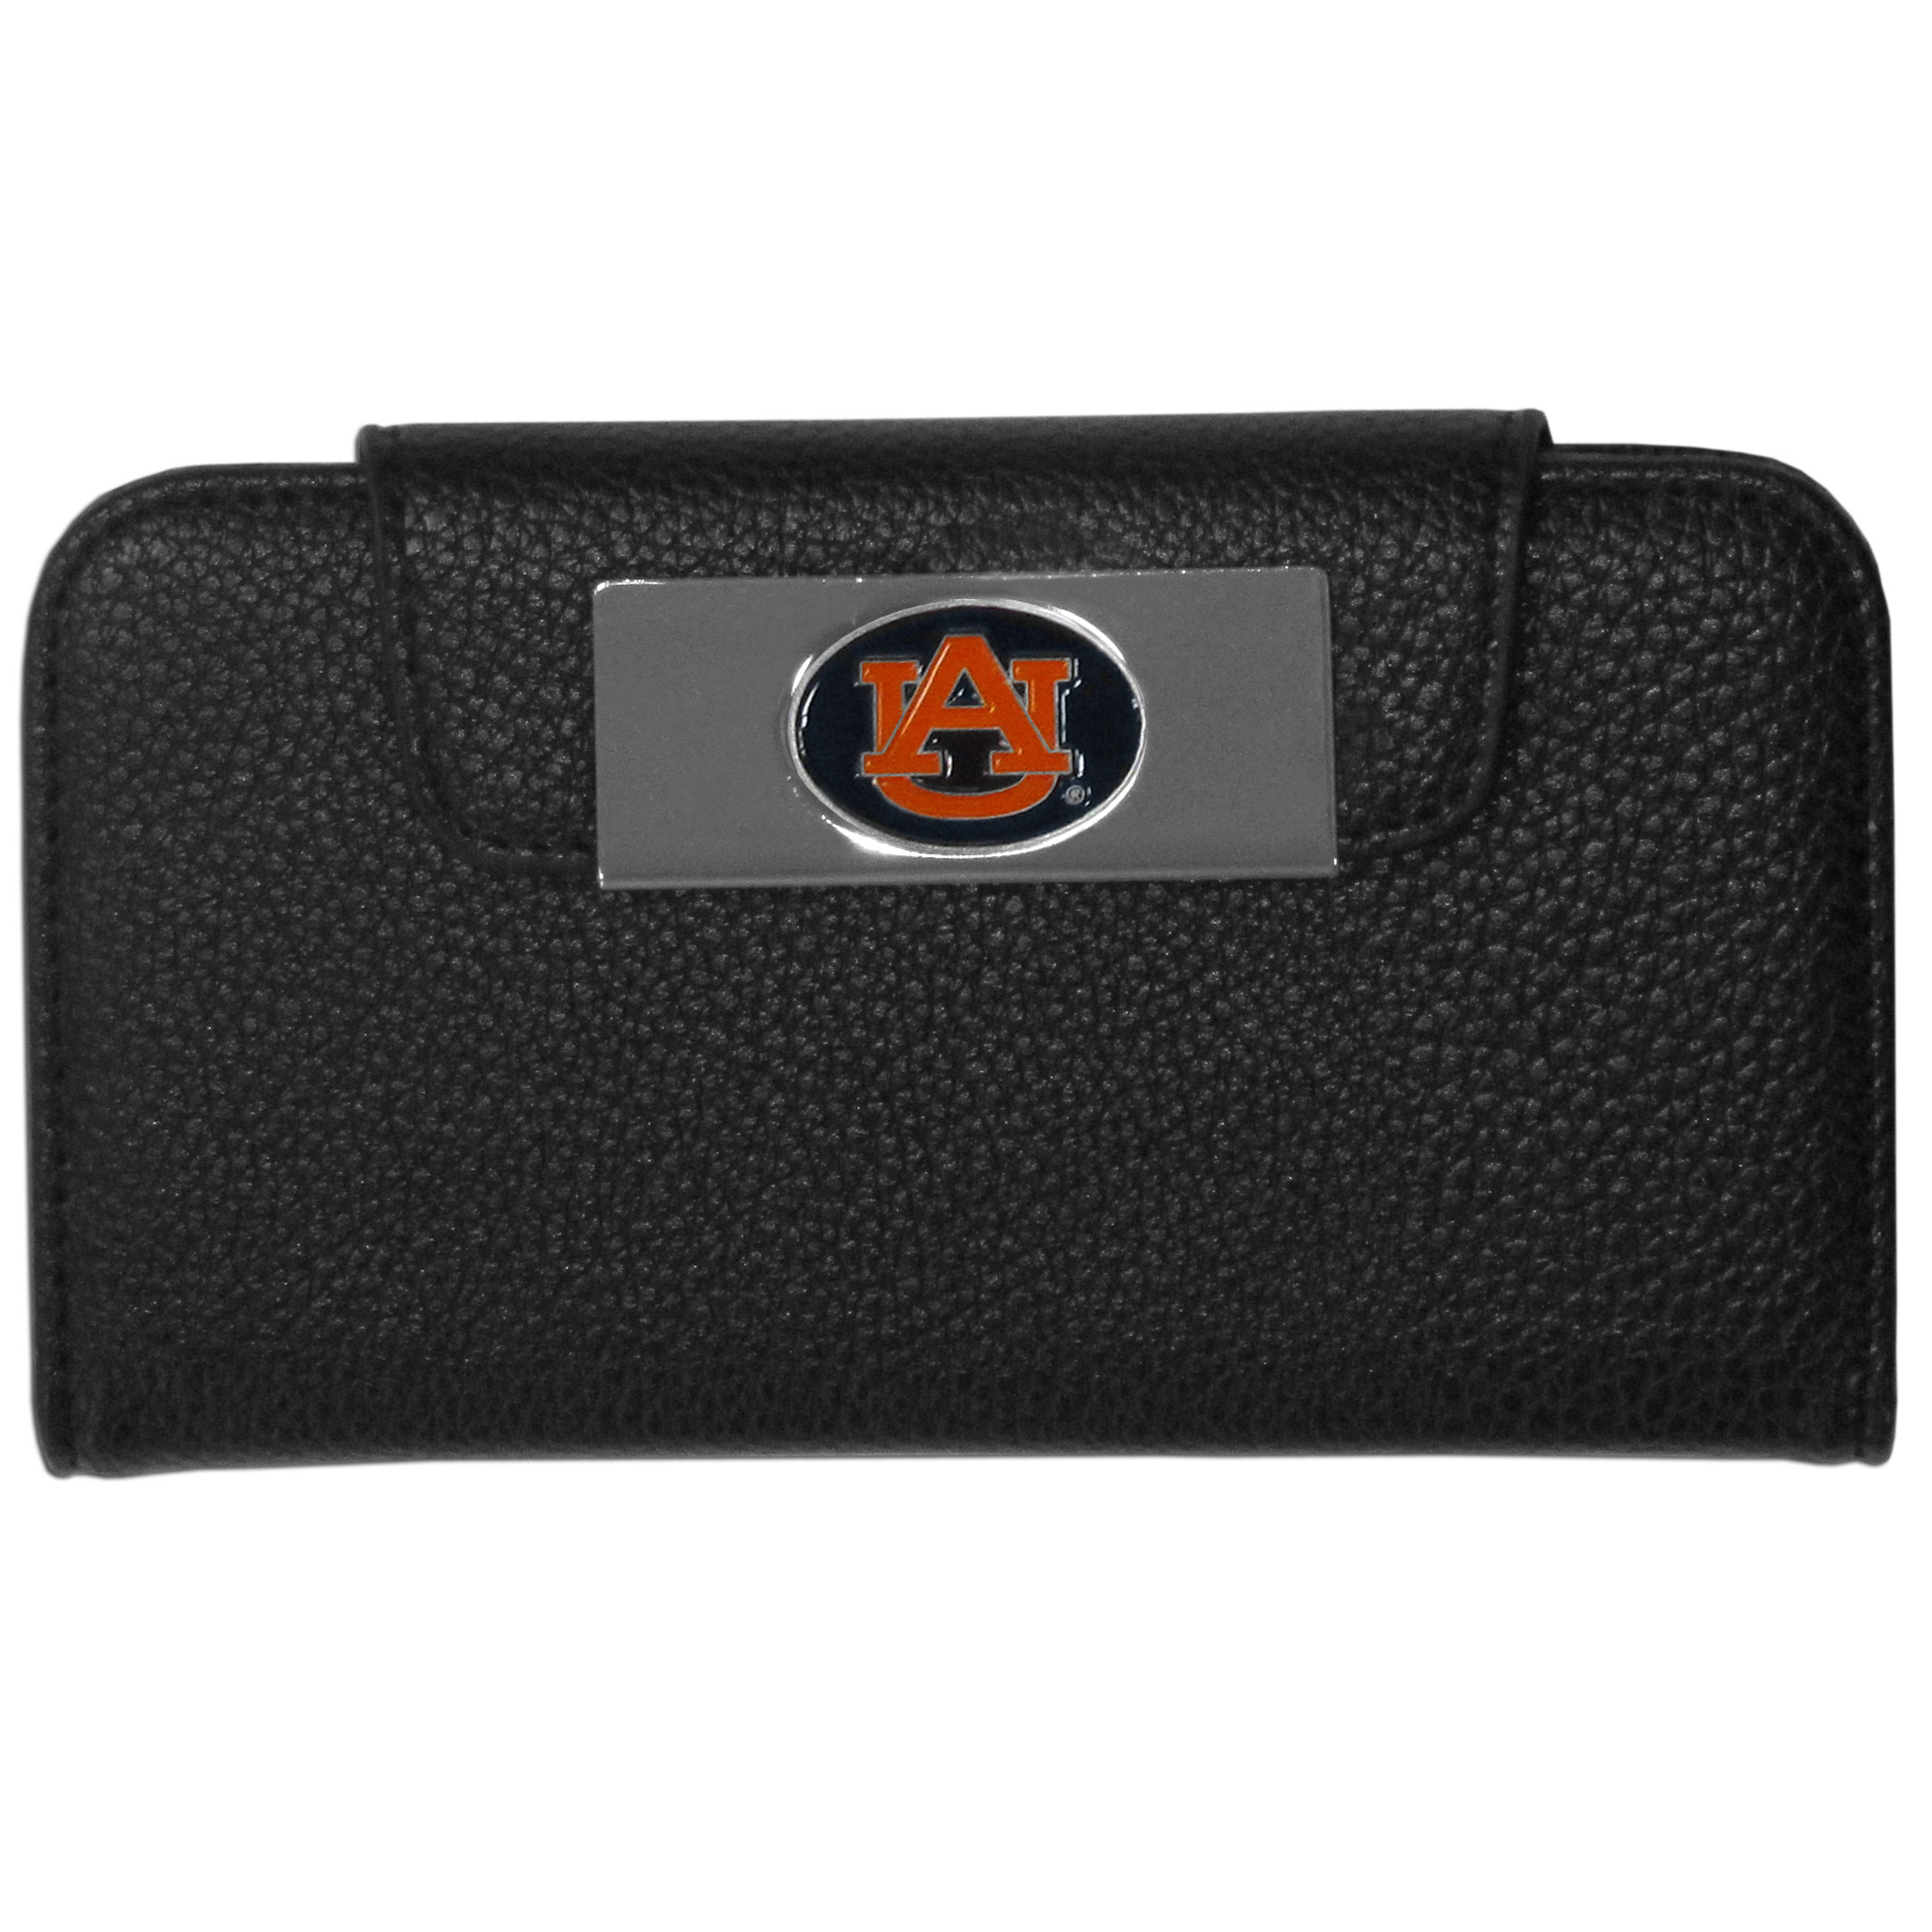 Auburn Tigers iPhone 5/5S Wallet Case - This new & wildly popular case is ideal for those who like to travel light! The stylish case has an inner hard shell that securely holds your phone while allowing complete access to the phone's functionality. The flip cover has slots for credit cards, business cards and identification. The magnetic flip cover has a metal Auburn Tigers emblem on a high polish chrome backing. Fits the iPhone 5/5S